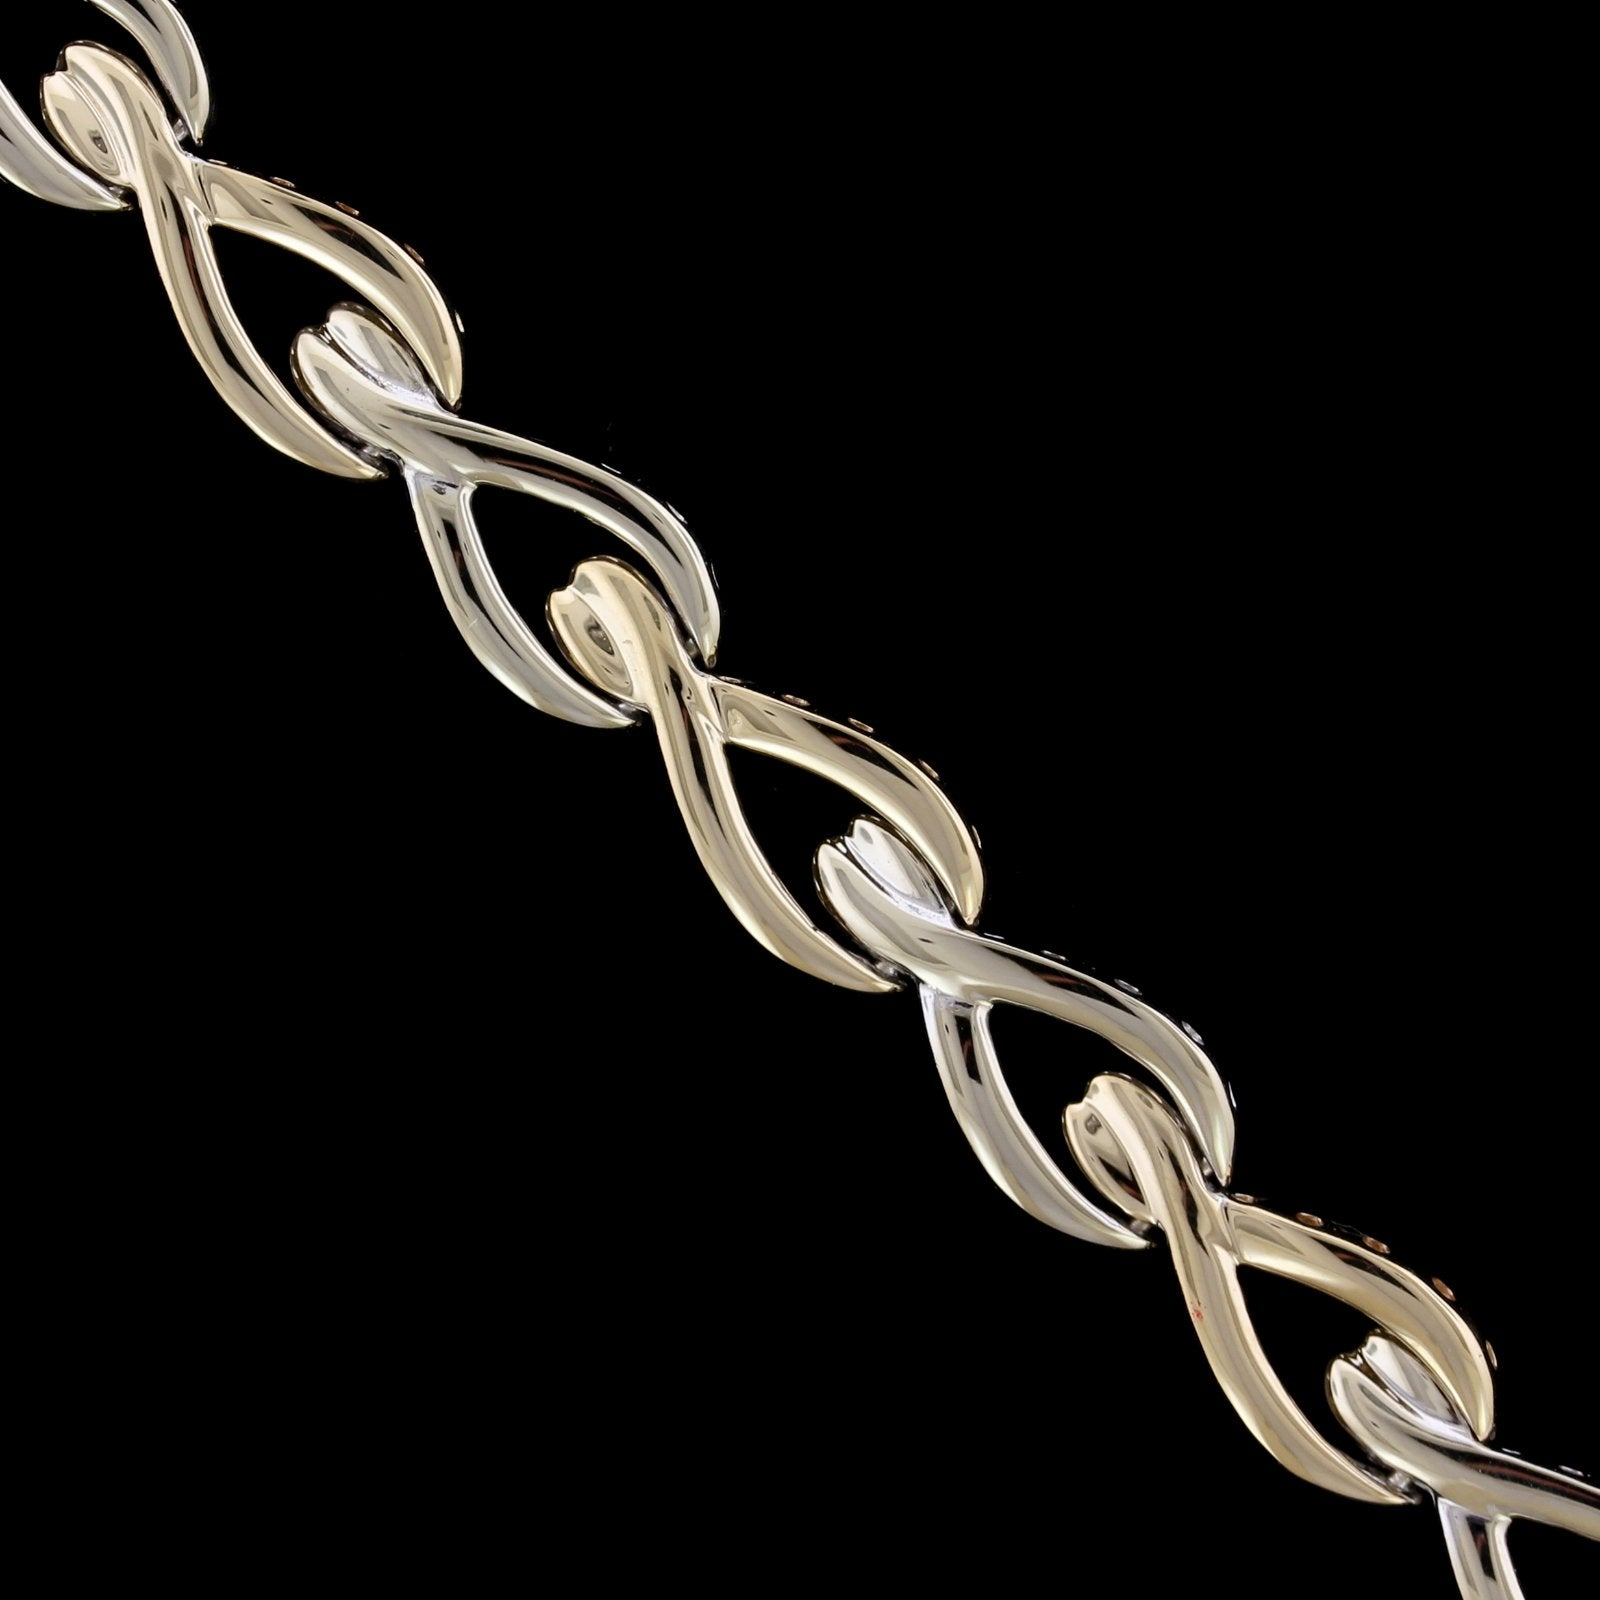 14K Two-Tone Gold Estate Bracelet